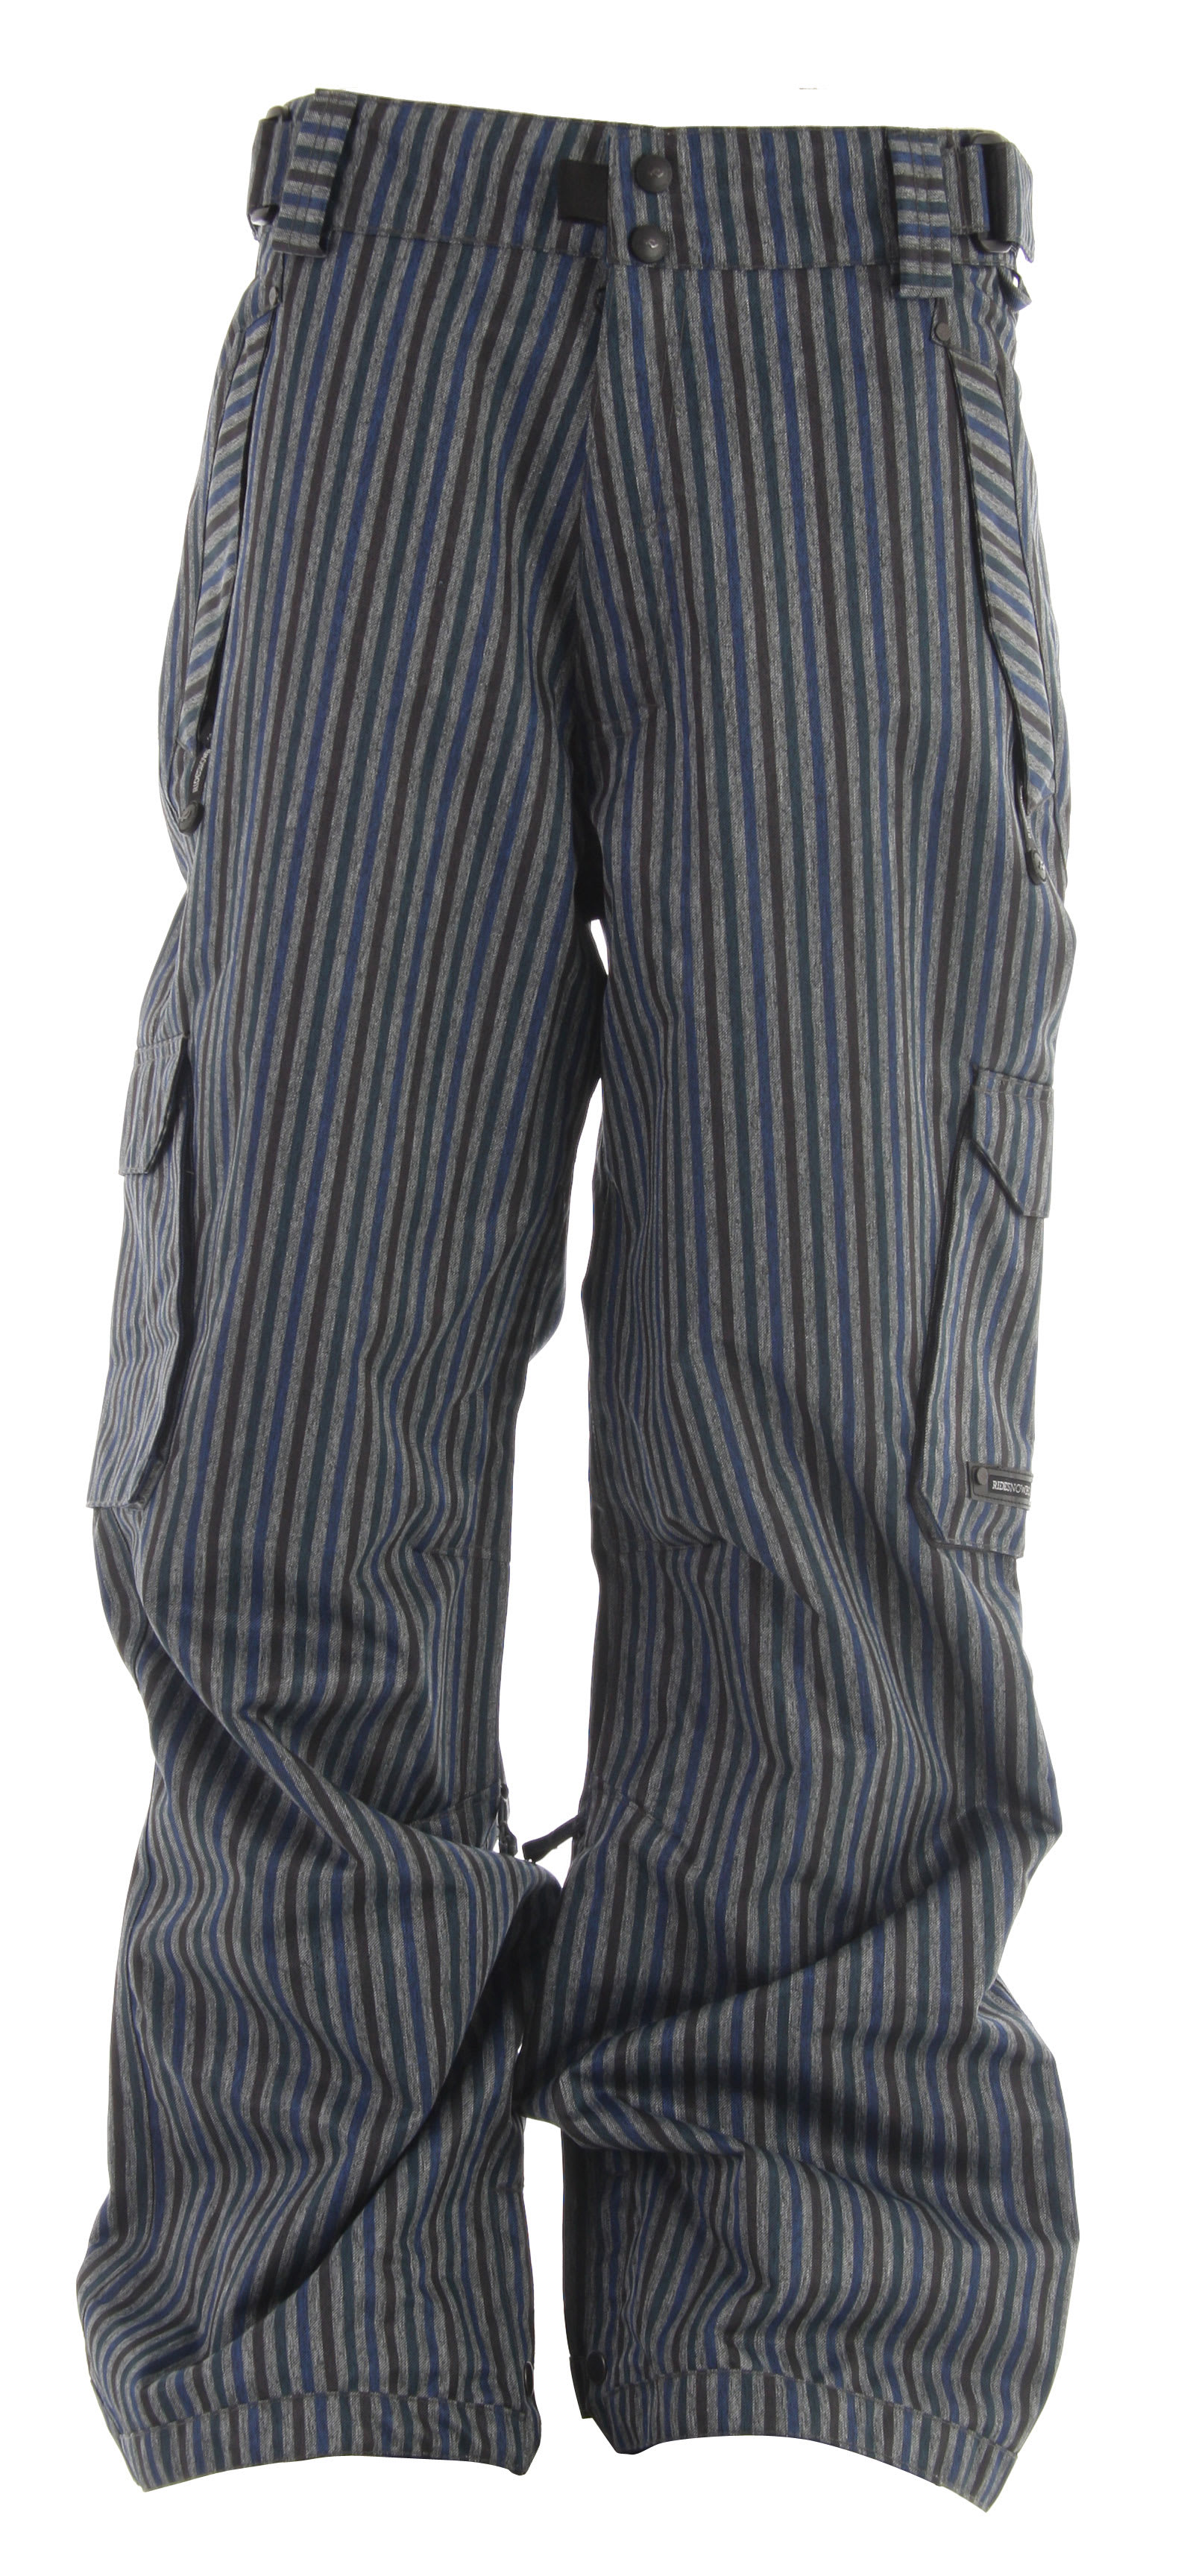 Shop for Ride Phinney Snowboard Pants Tri Stripe Denim - Men's